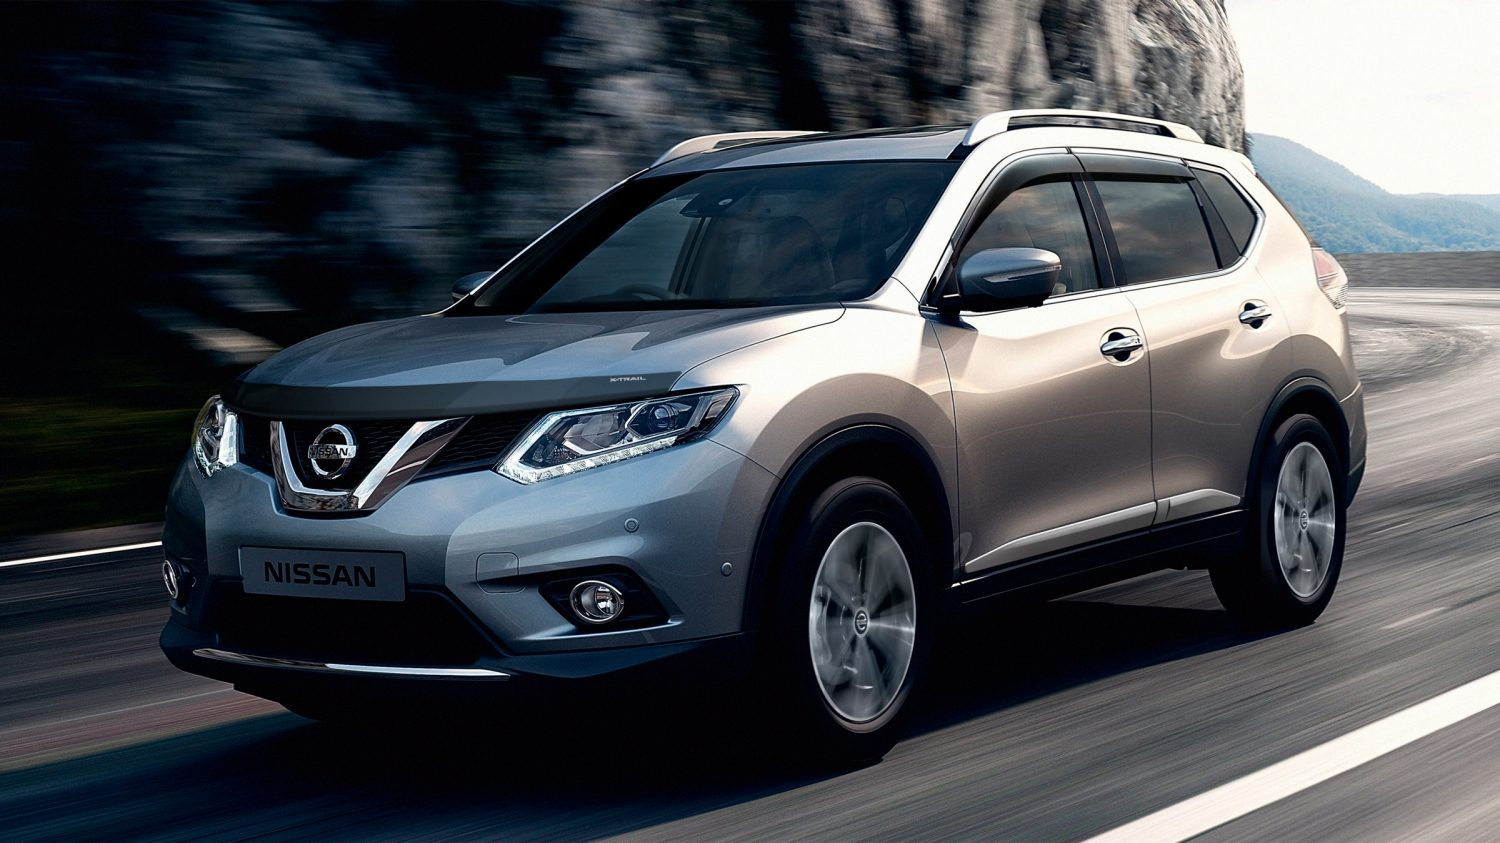 7 seater & 4x4 car design - 4x4 exterior - Front | Nissan X-Trail